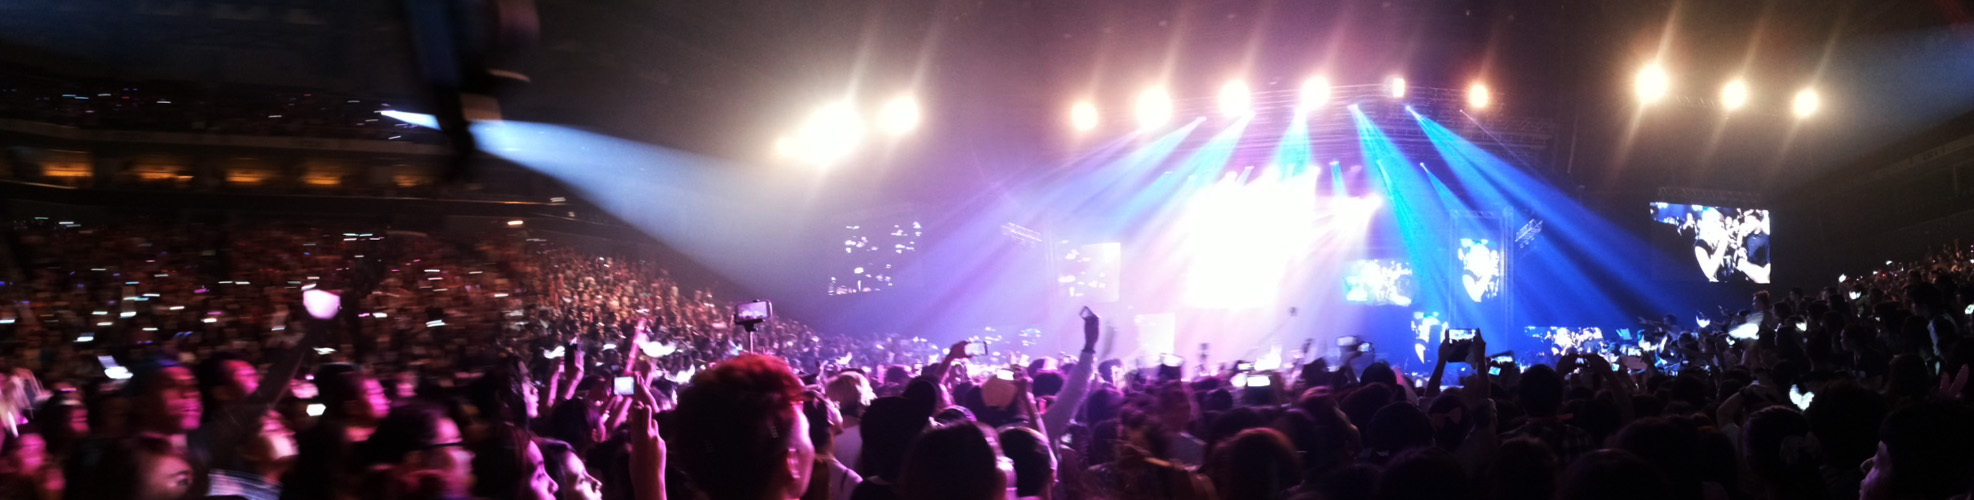 The crazy crowd during the concert